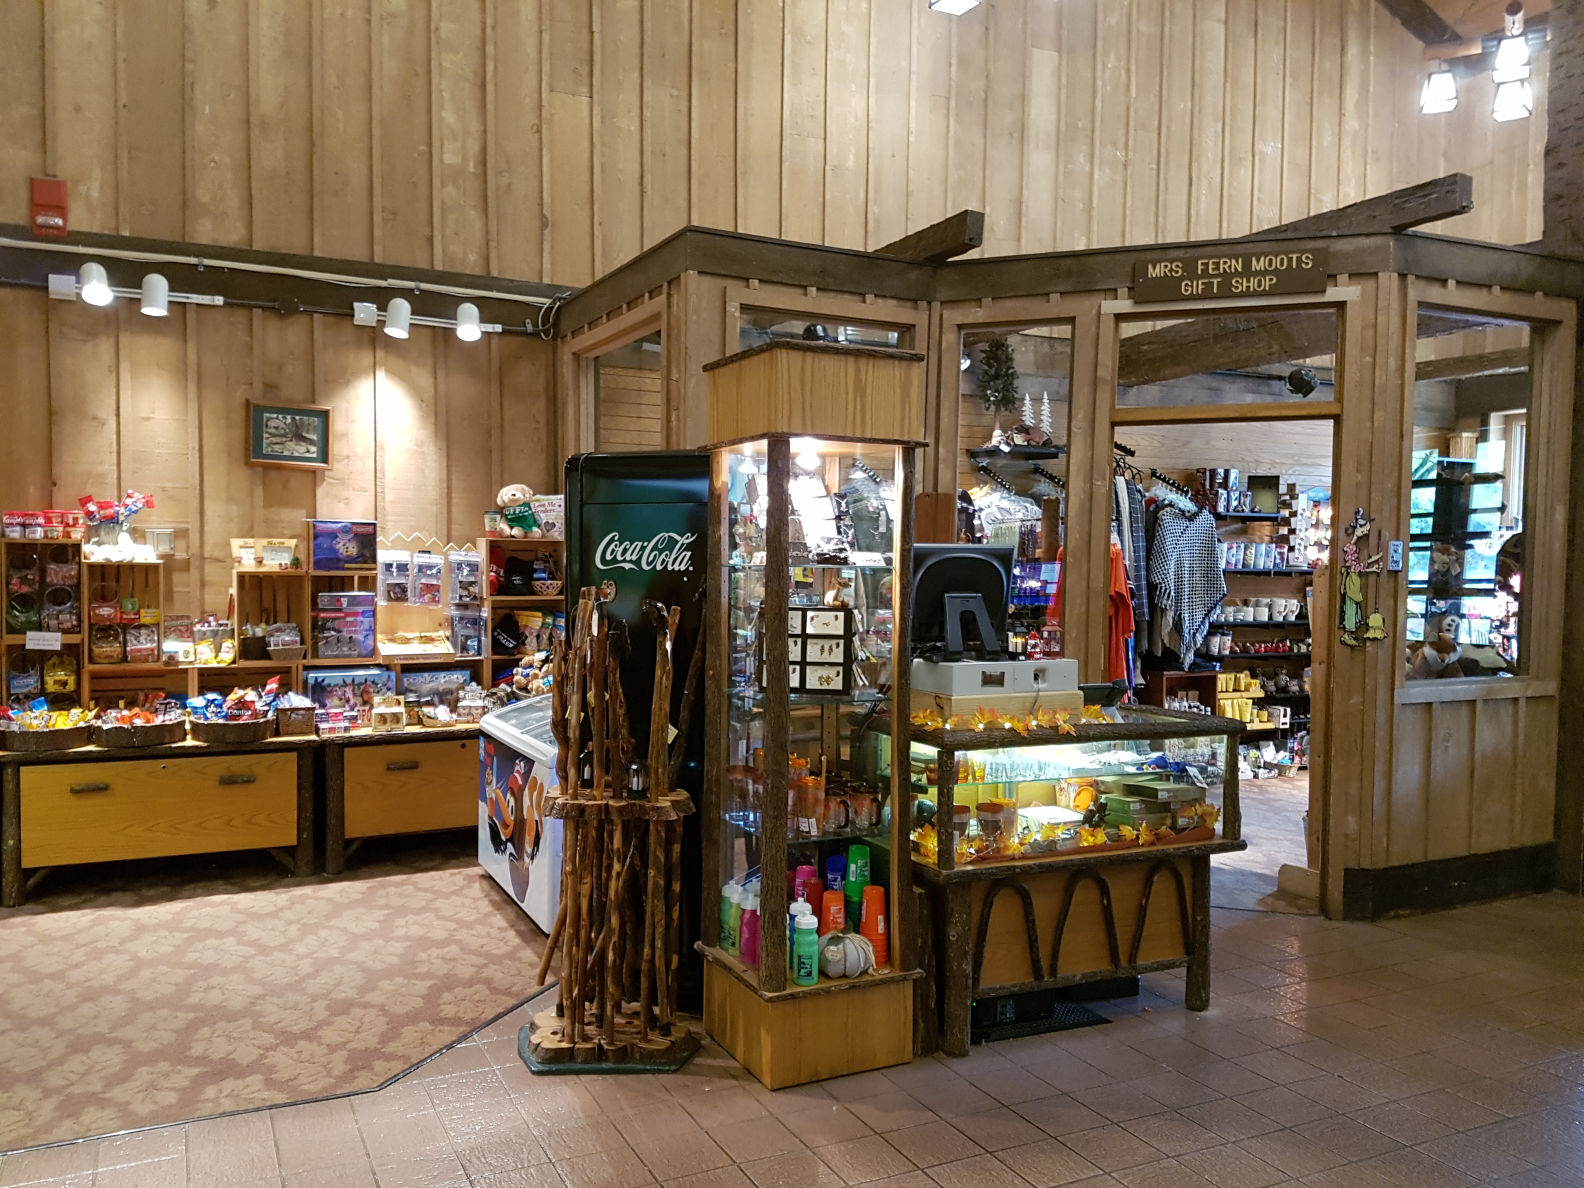 Gift shop at Abe Martin Lodge